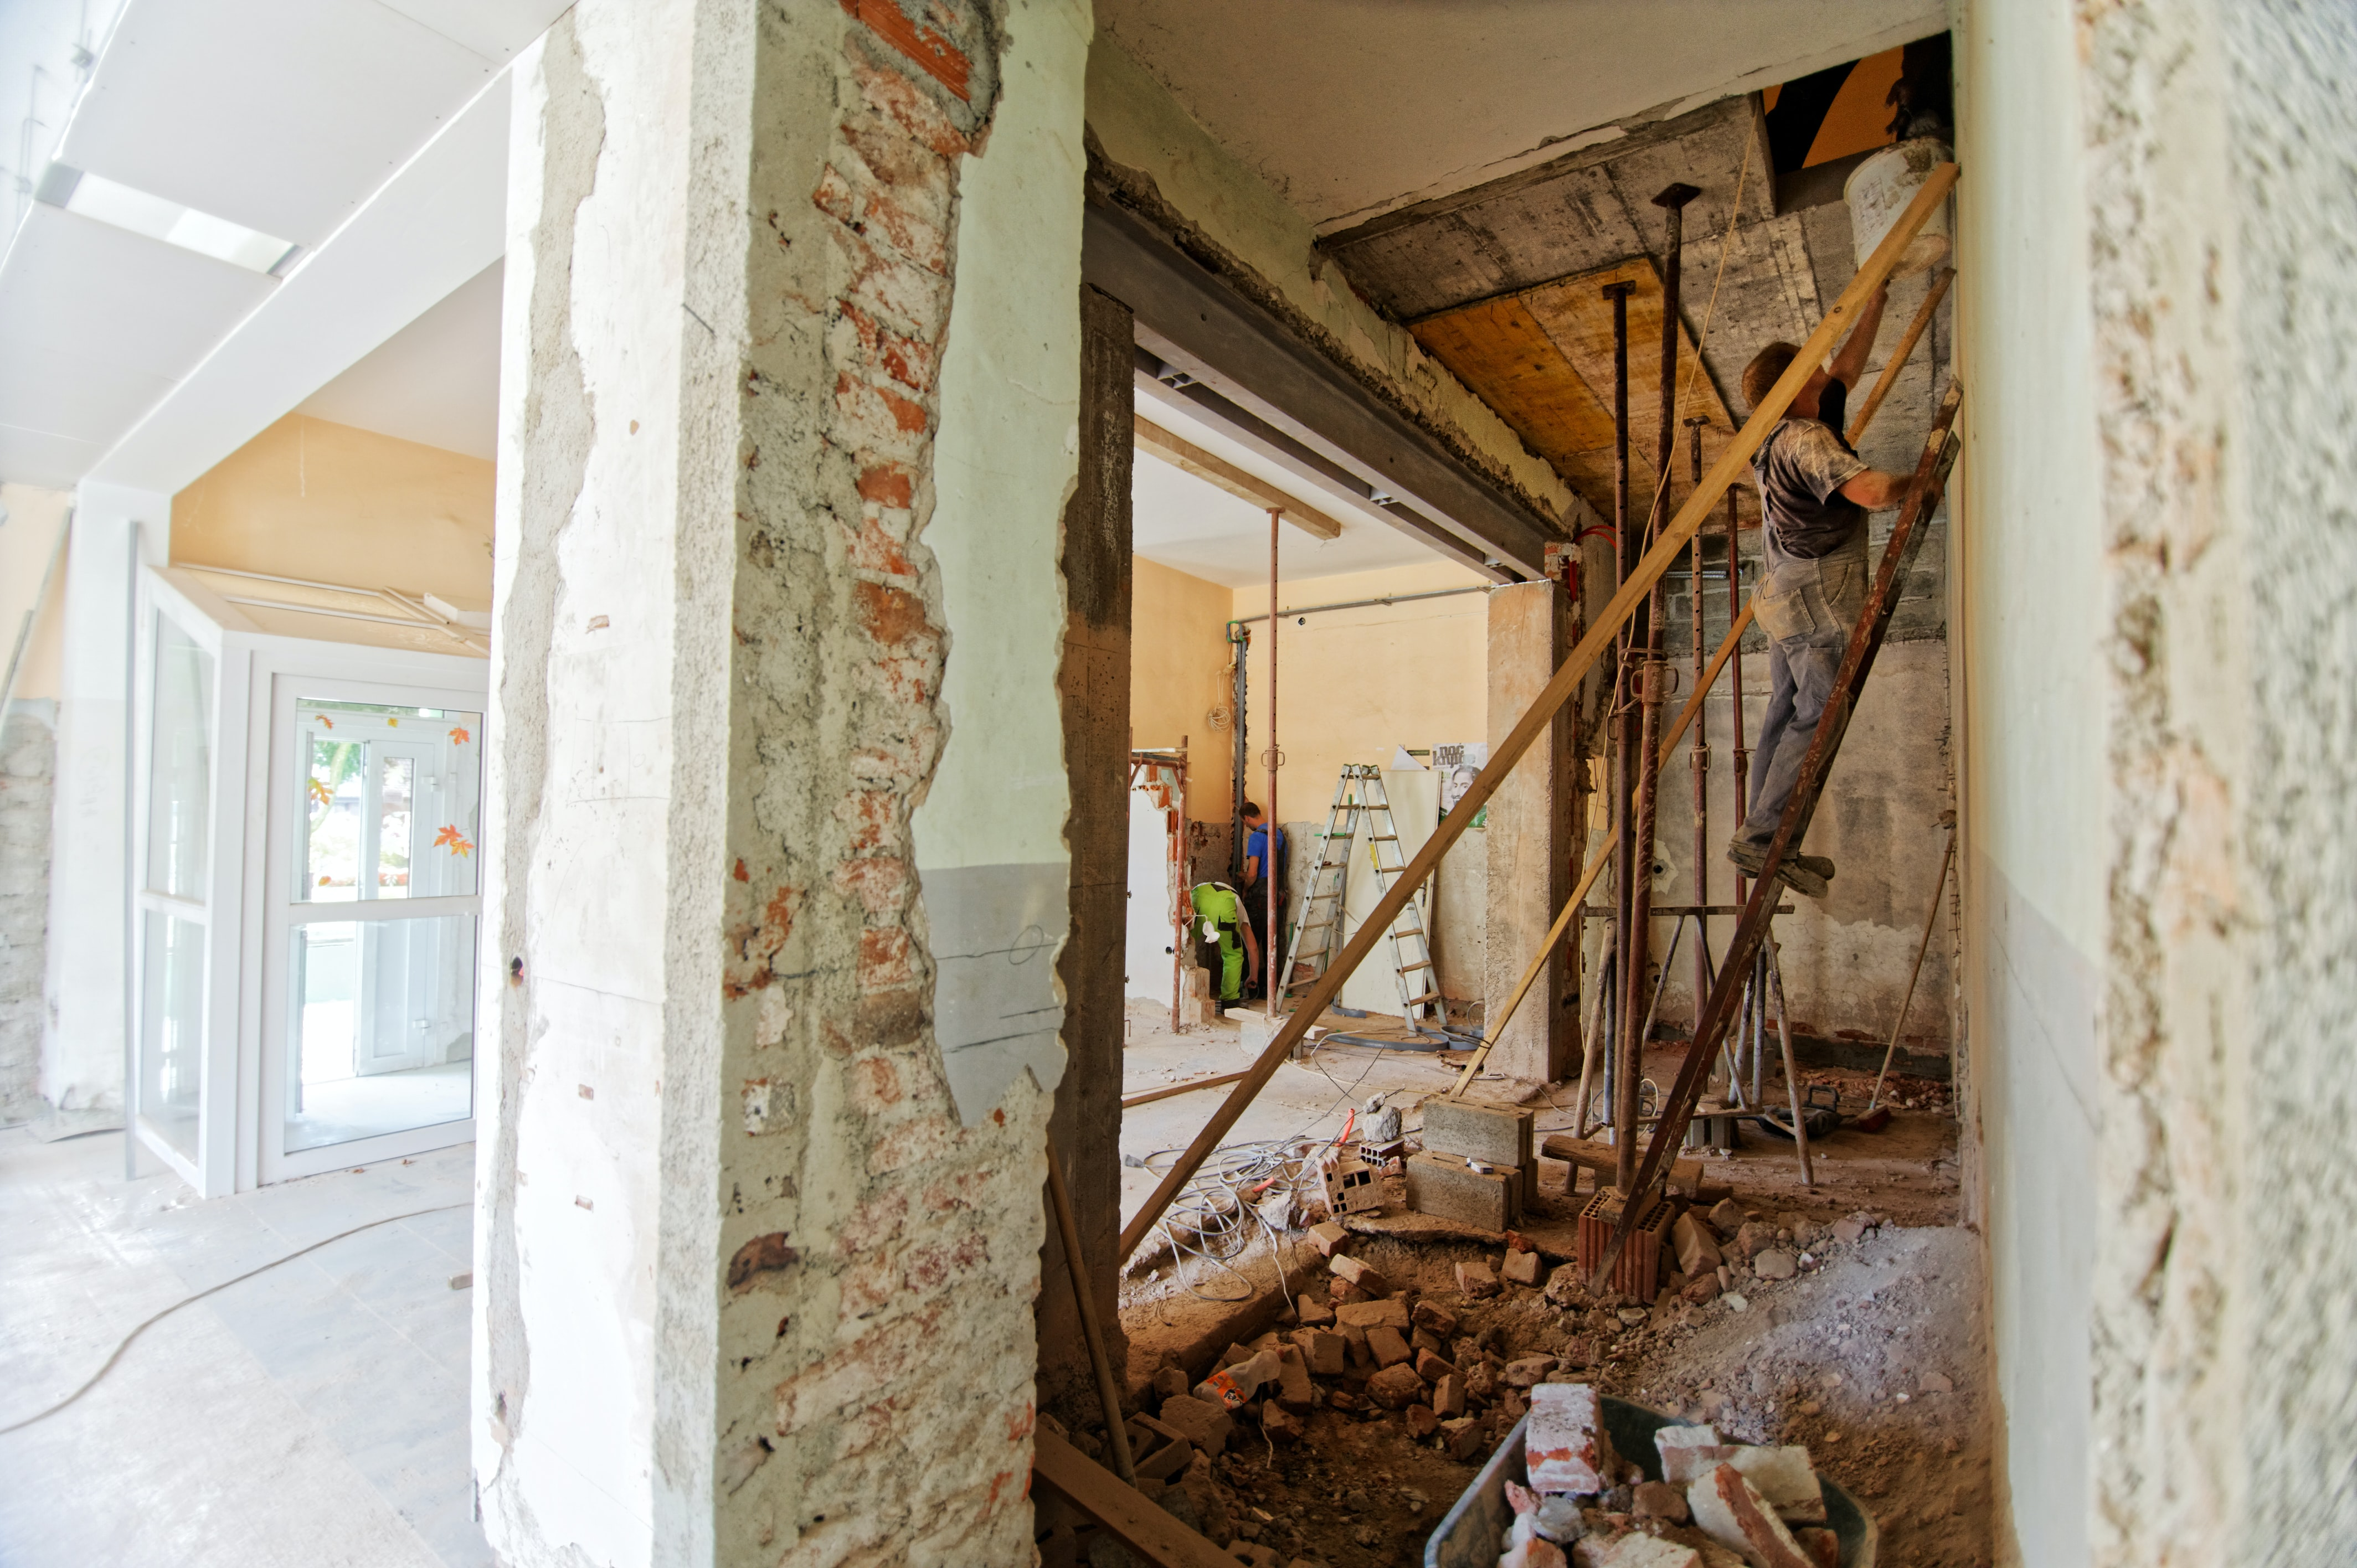 Old to New Renovations and extension on Victorian Terrace Houses, working on the interior